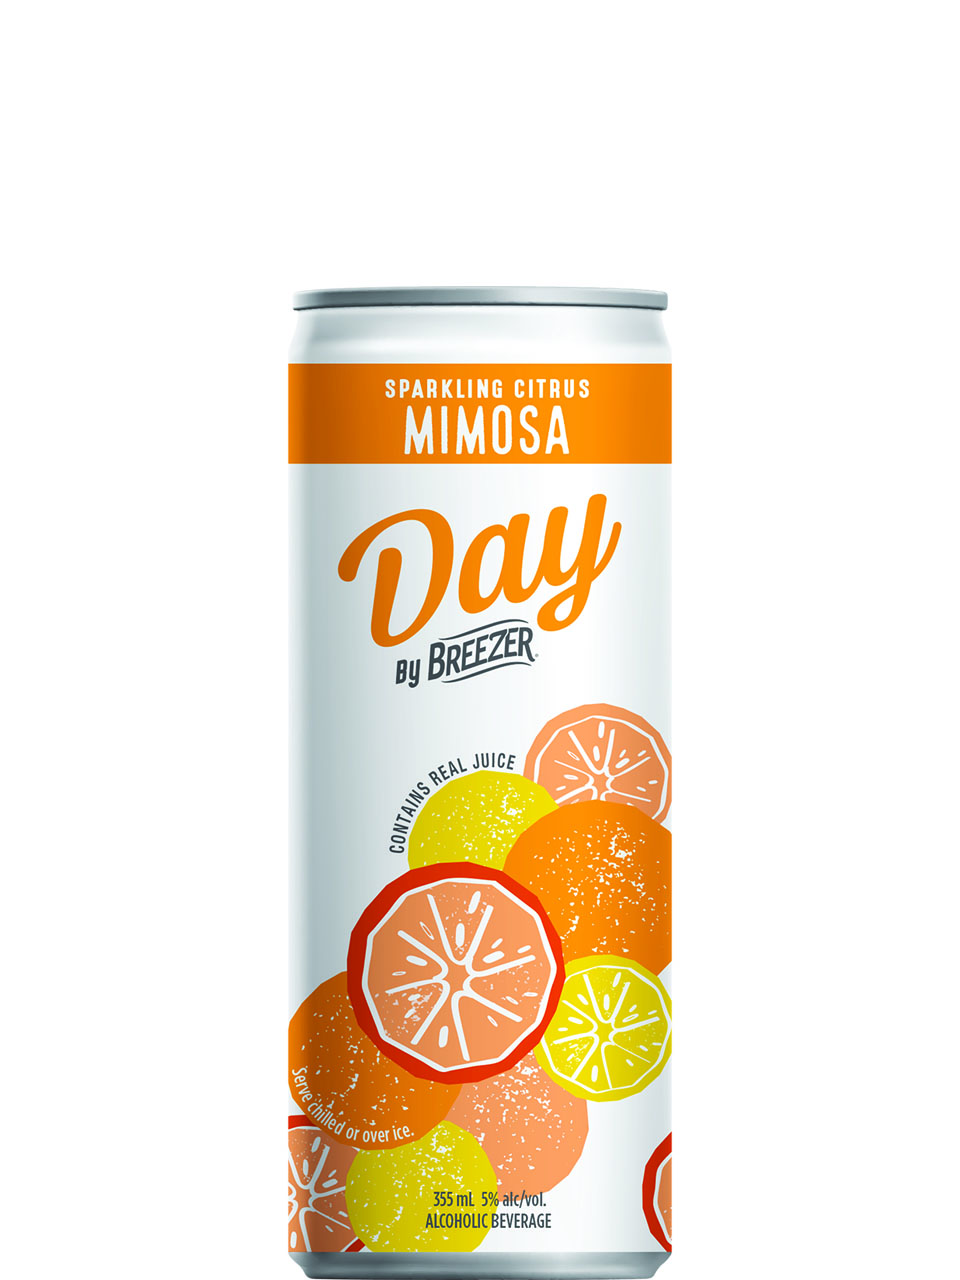 Breezer DAY Mimosa 6 Pack Cans